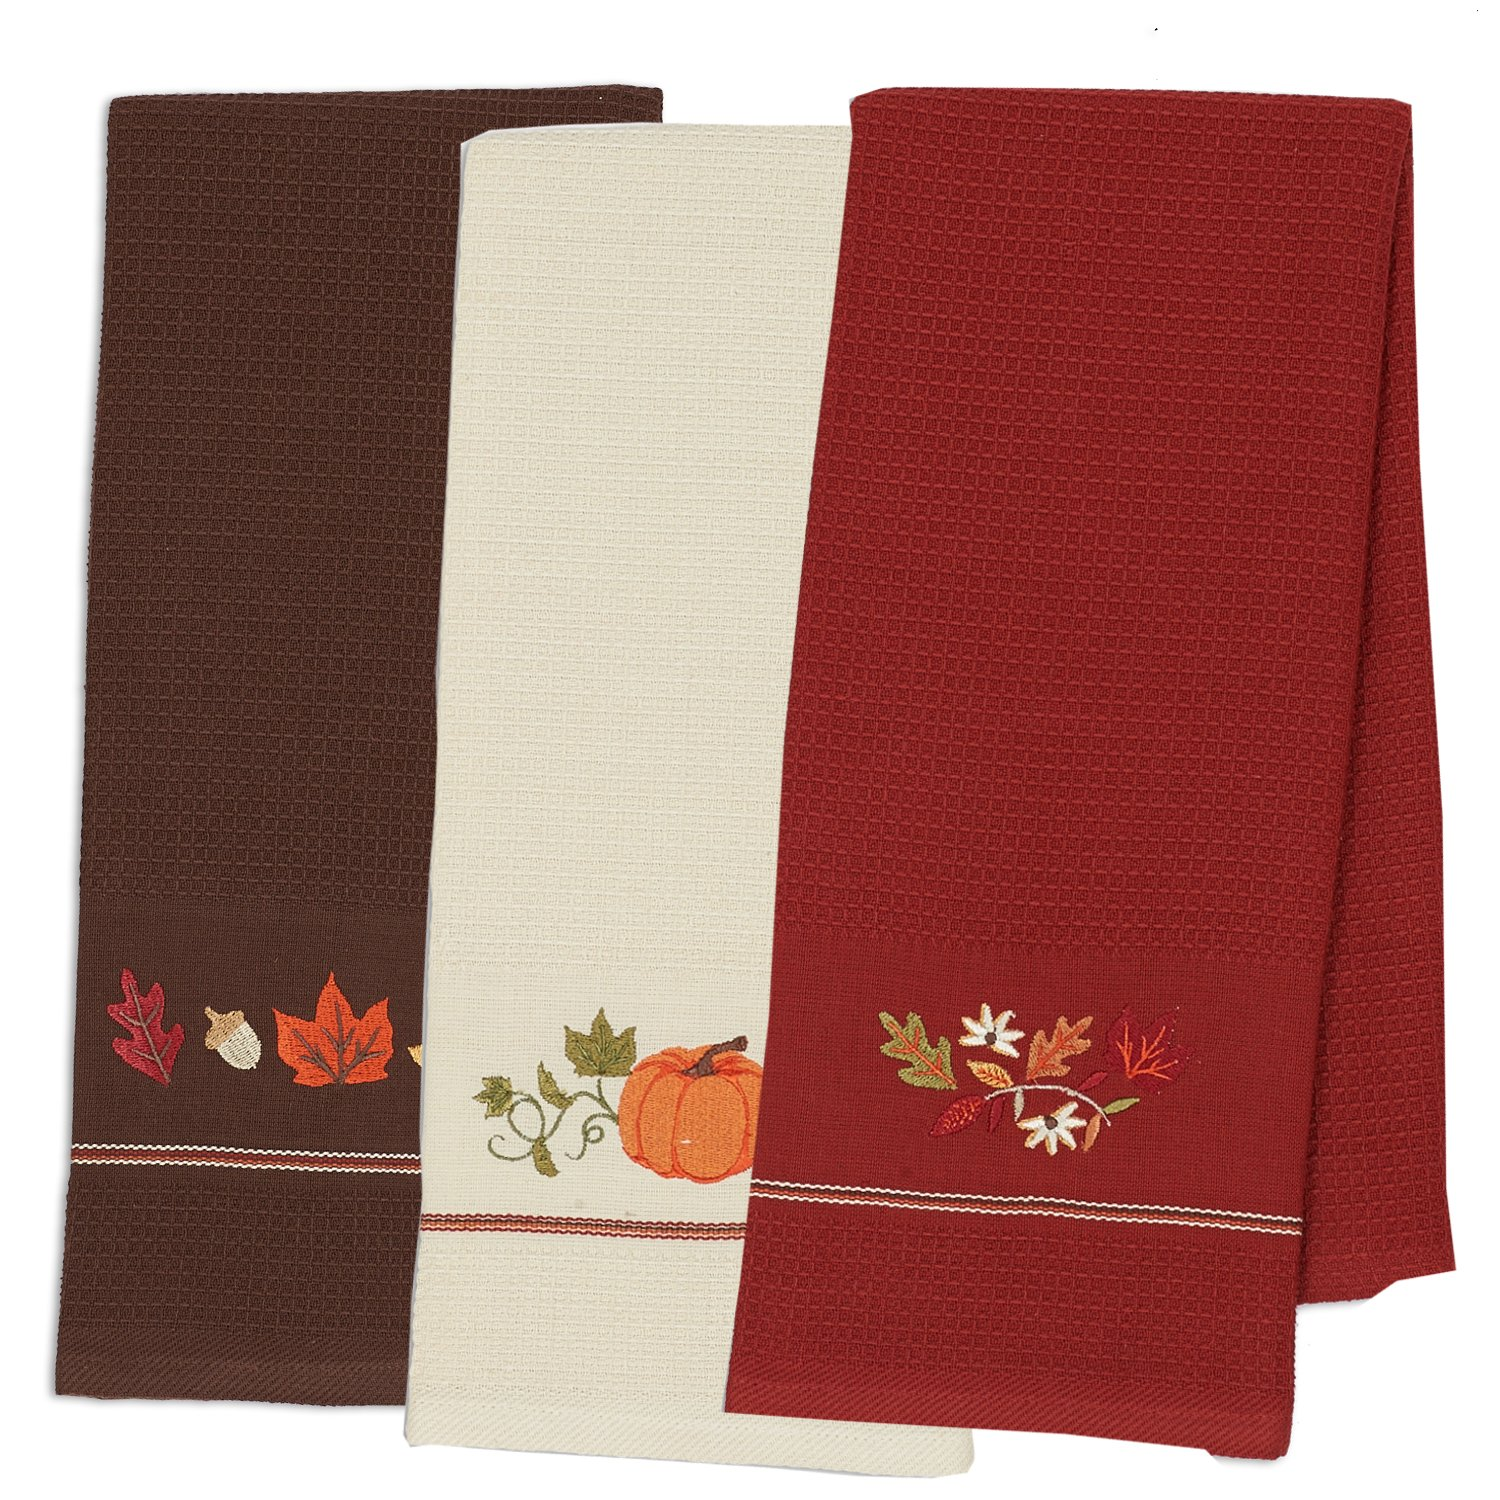 DII Cotton Thanksgiving Fall Holiday Decorative Dish Towels, 18x28'', Set of 3-Harvest Pumpkin by DII